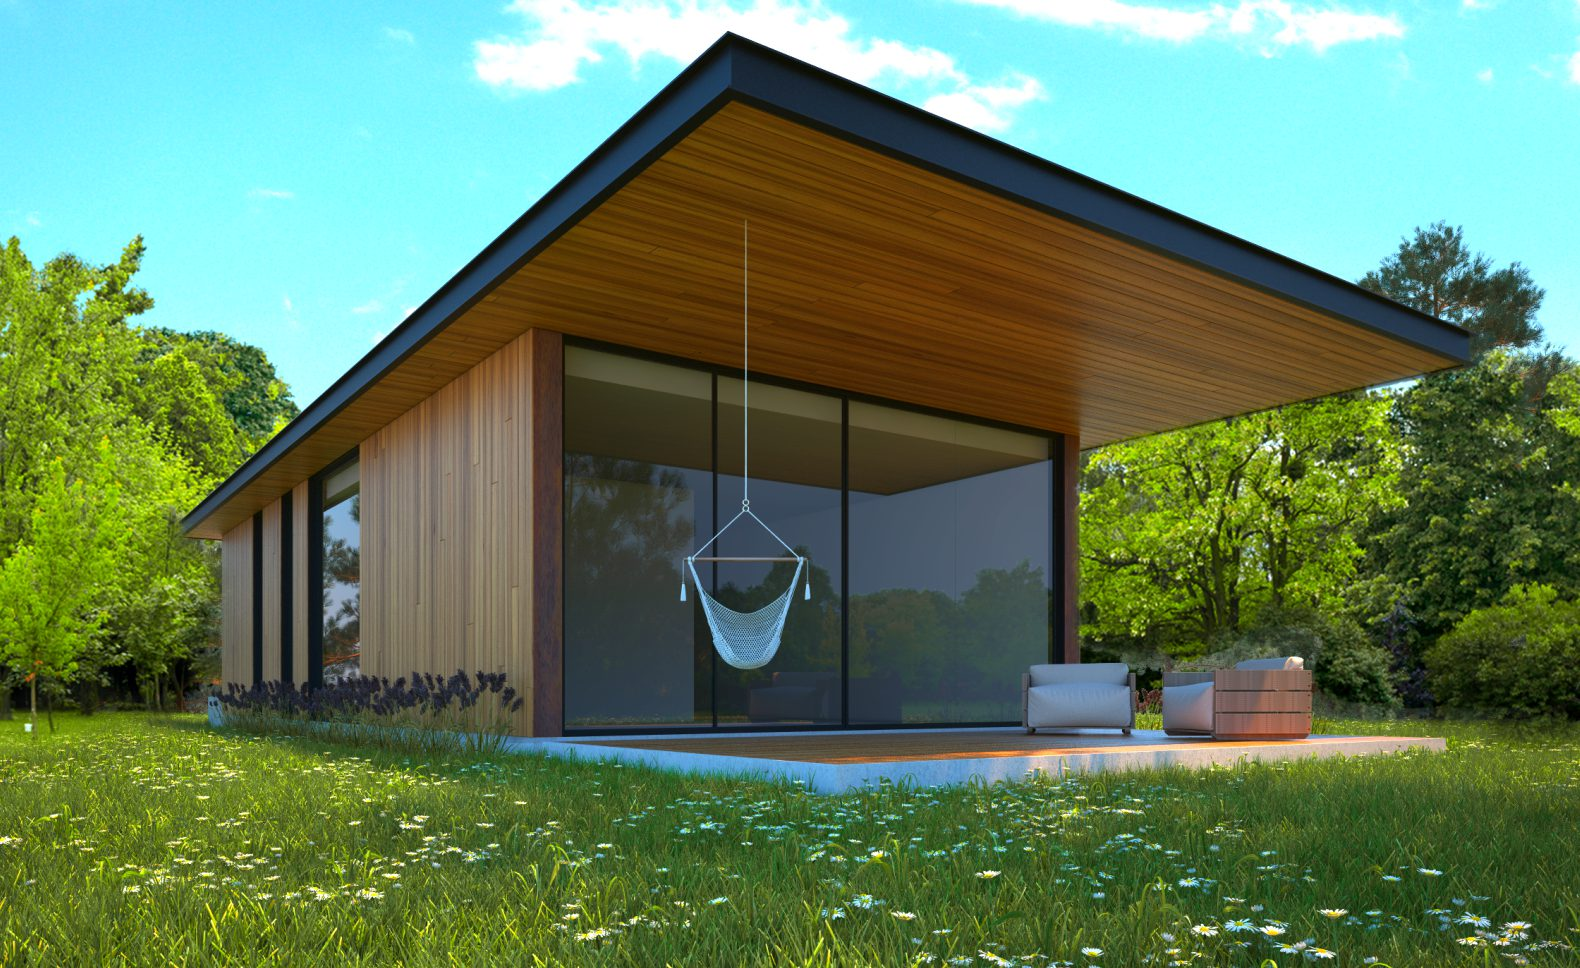 Harvard Designed Tiny Homes: Custom Built Tiny Homes Provide Compact Living Without